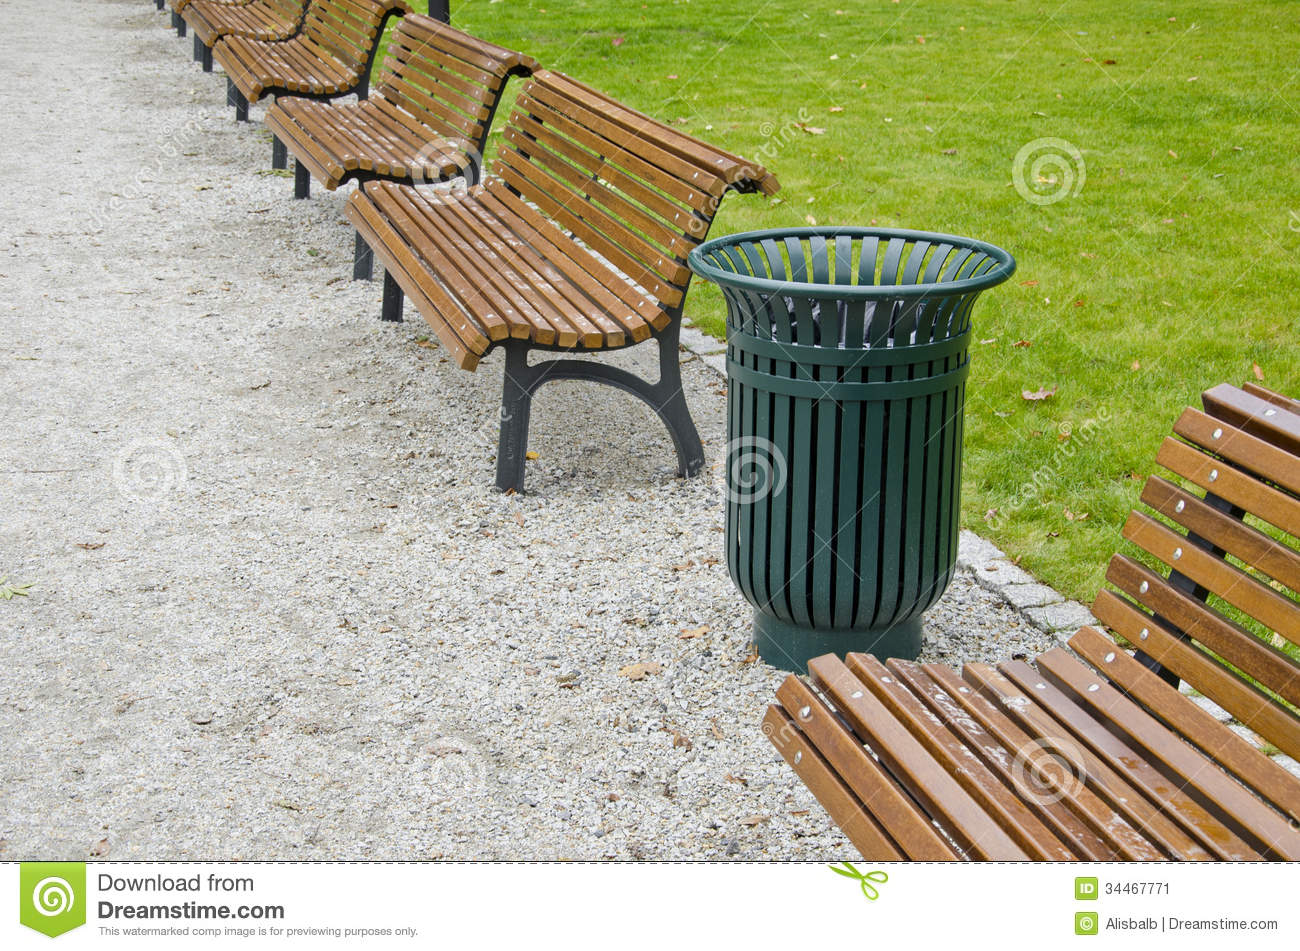 Garbage Bin And Wooden Bench In City Park Stock Image ...